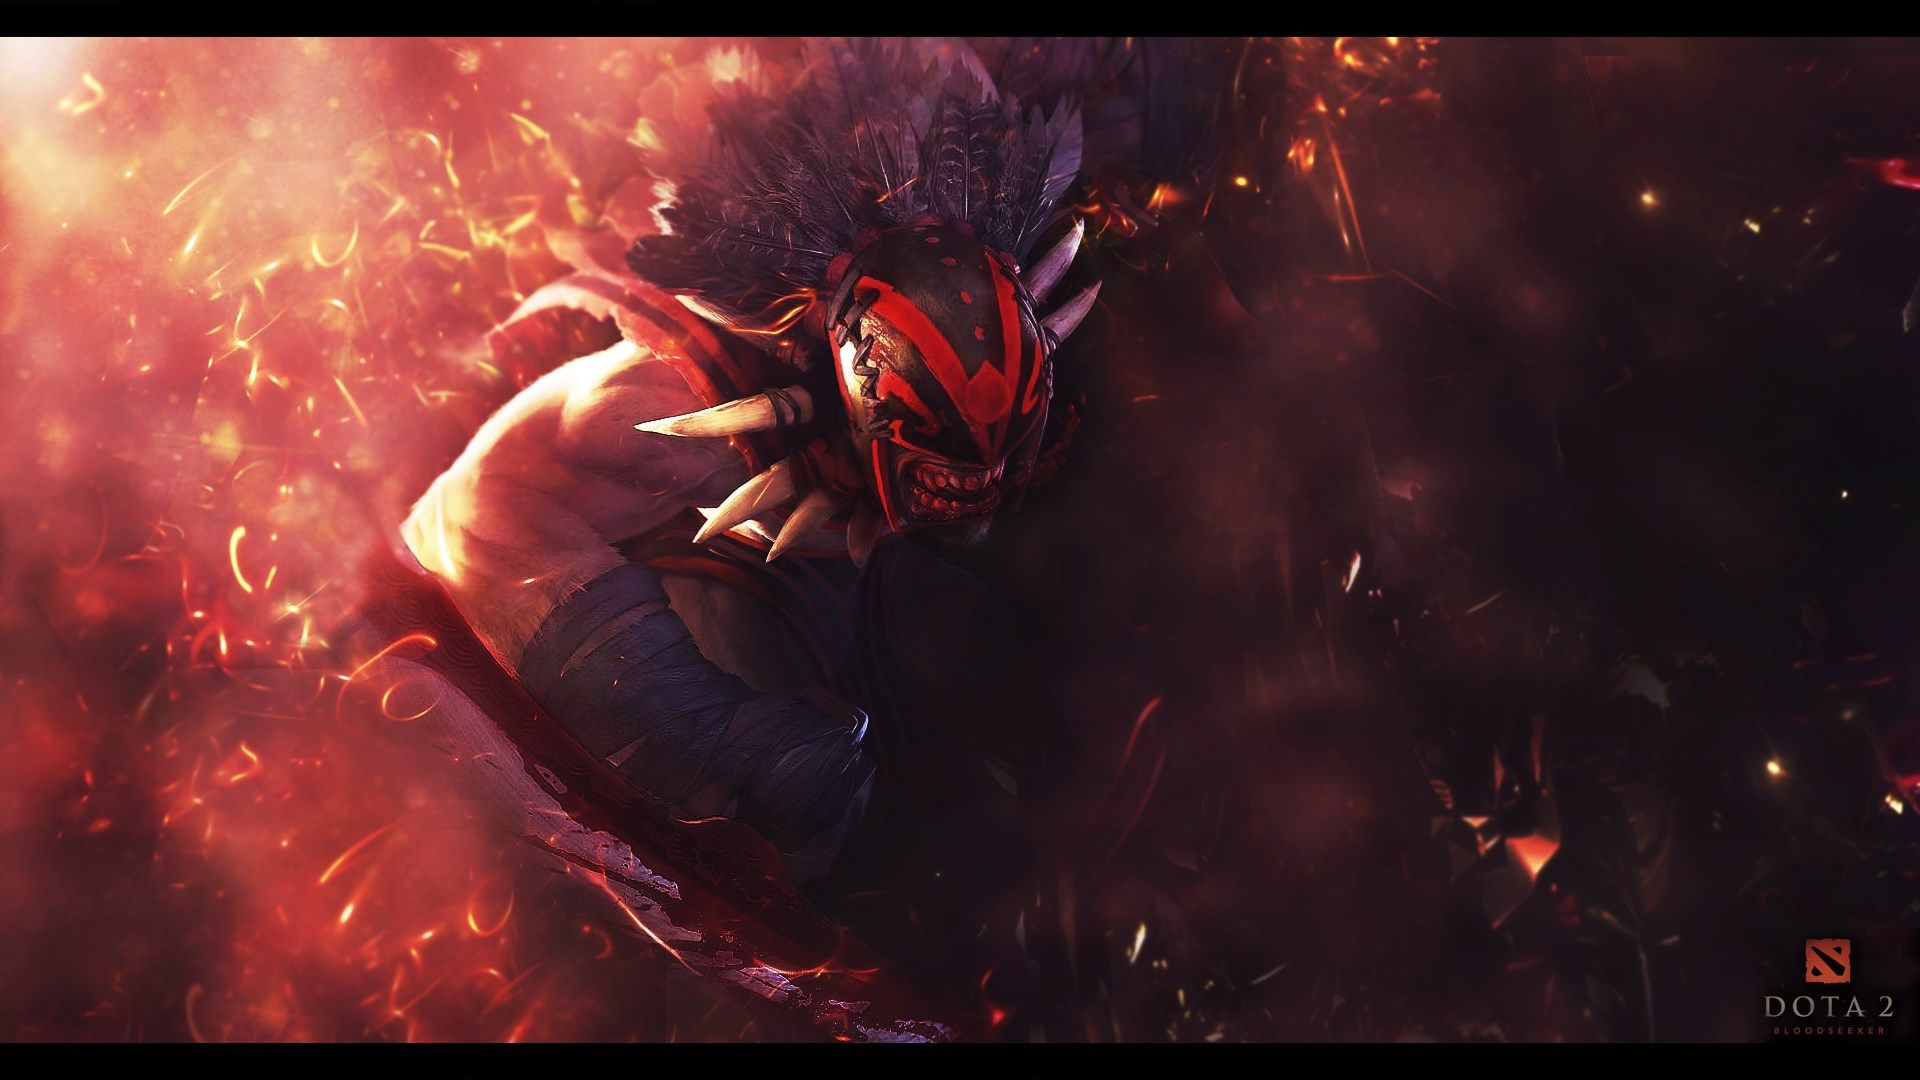 X Bloodseeker Dota  Wallpaper Hd